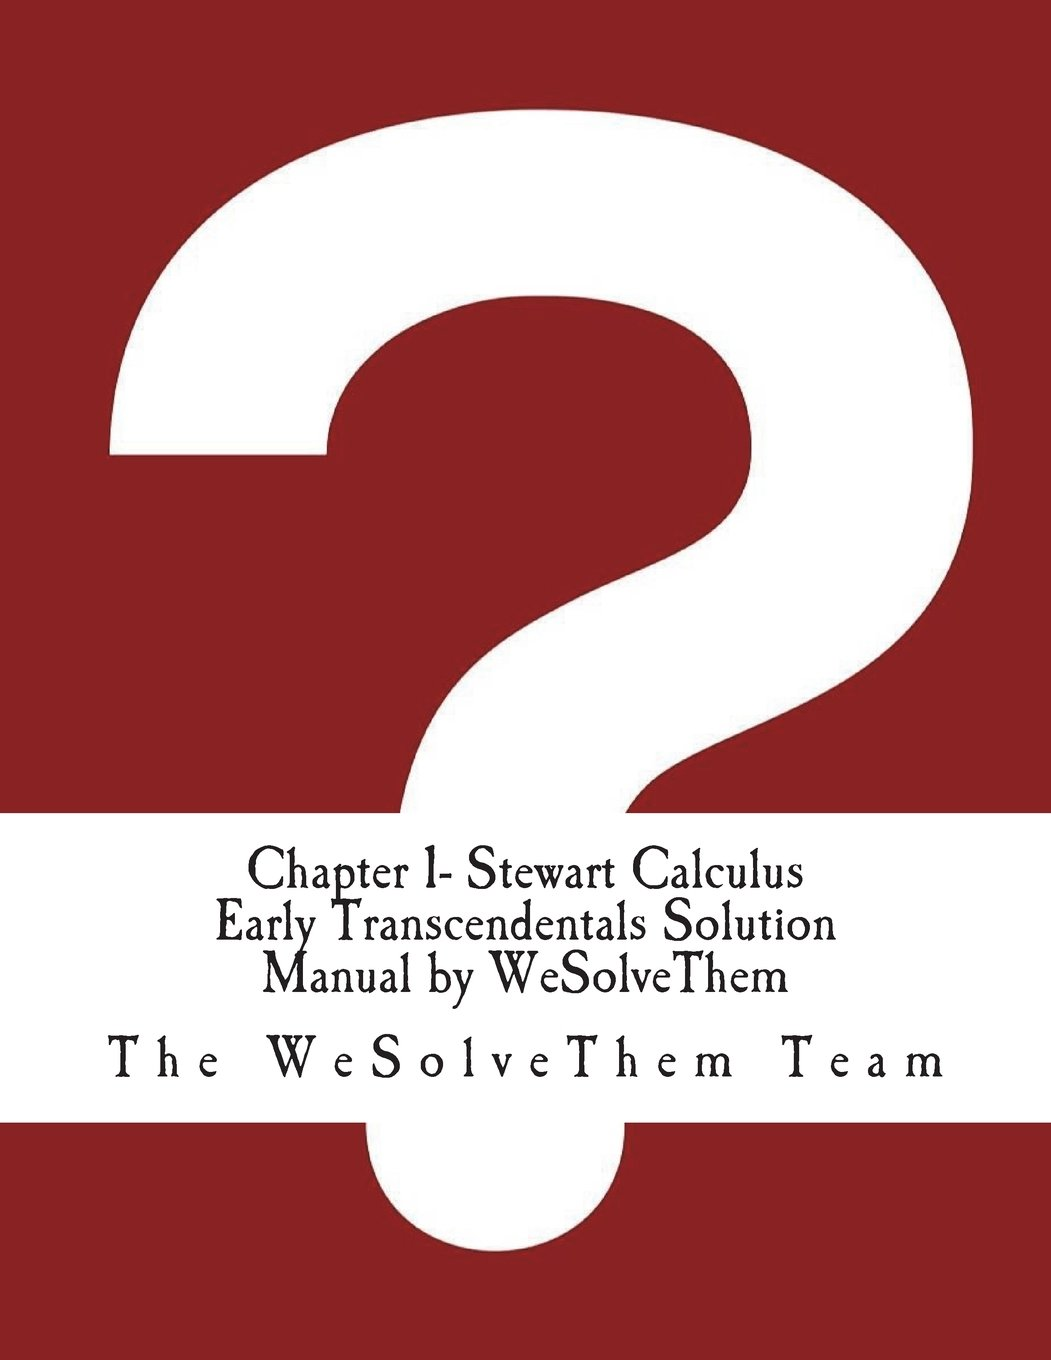 Chapter 1- Stewart Calculus Early Transcendentals Solution Manual by  WeSolveThem Paperback – June 24, 2018. by The WeSolveThem Team ...